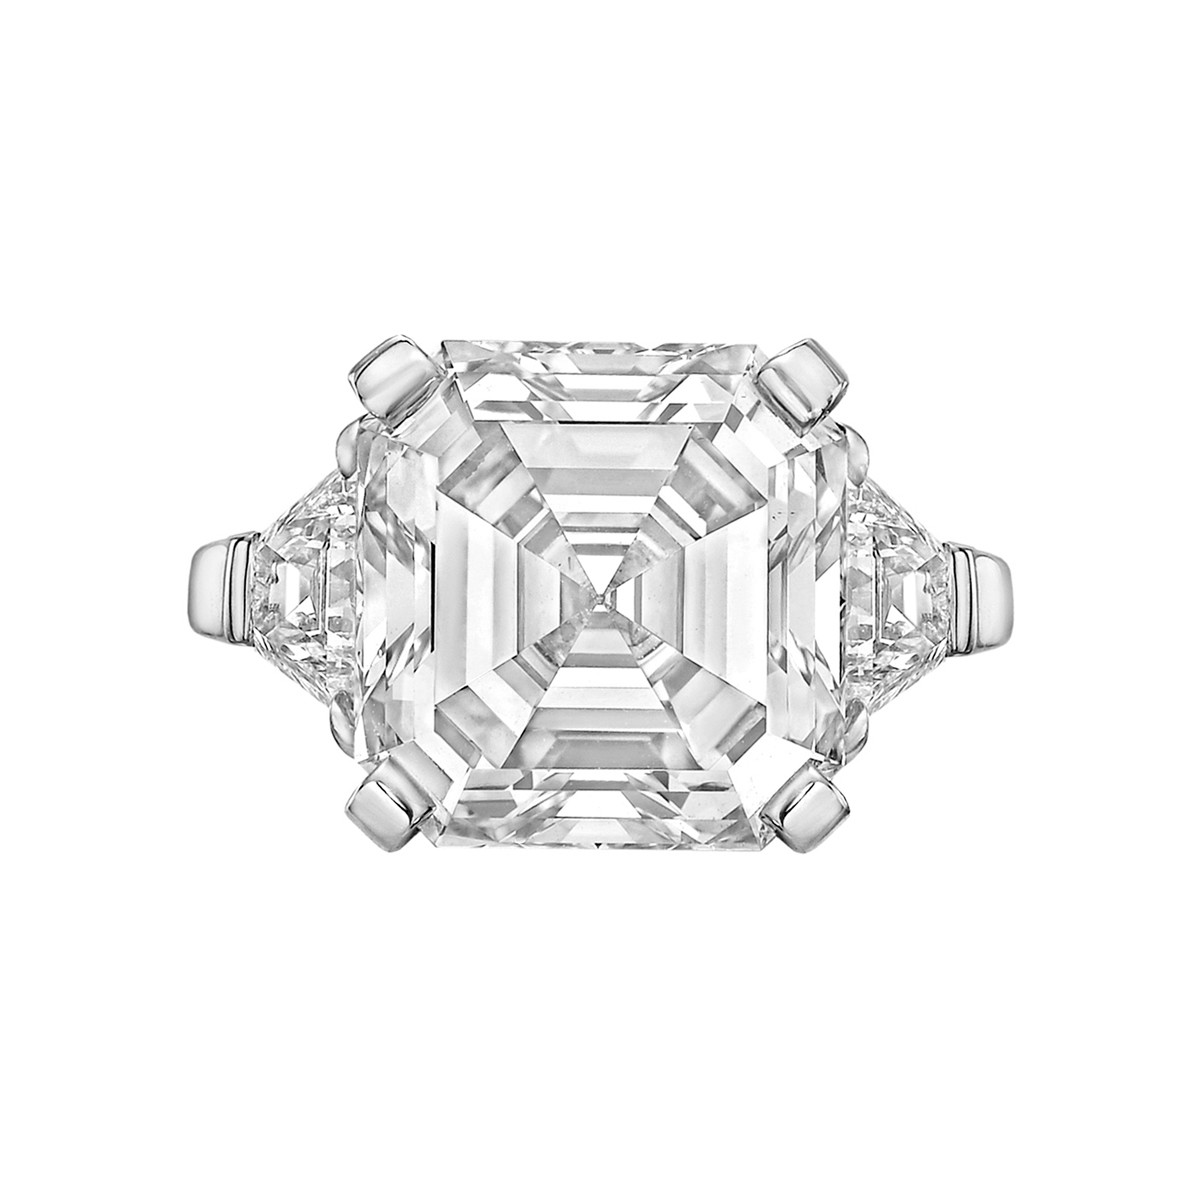 8.03ct Asscher-Cut Diamond Ring